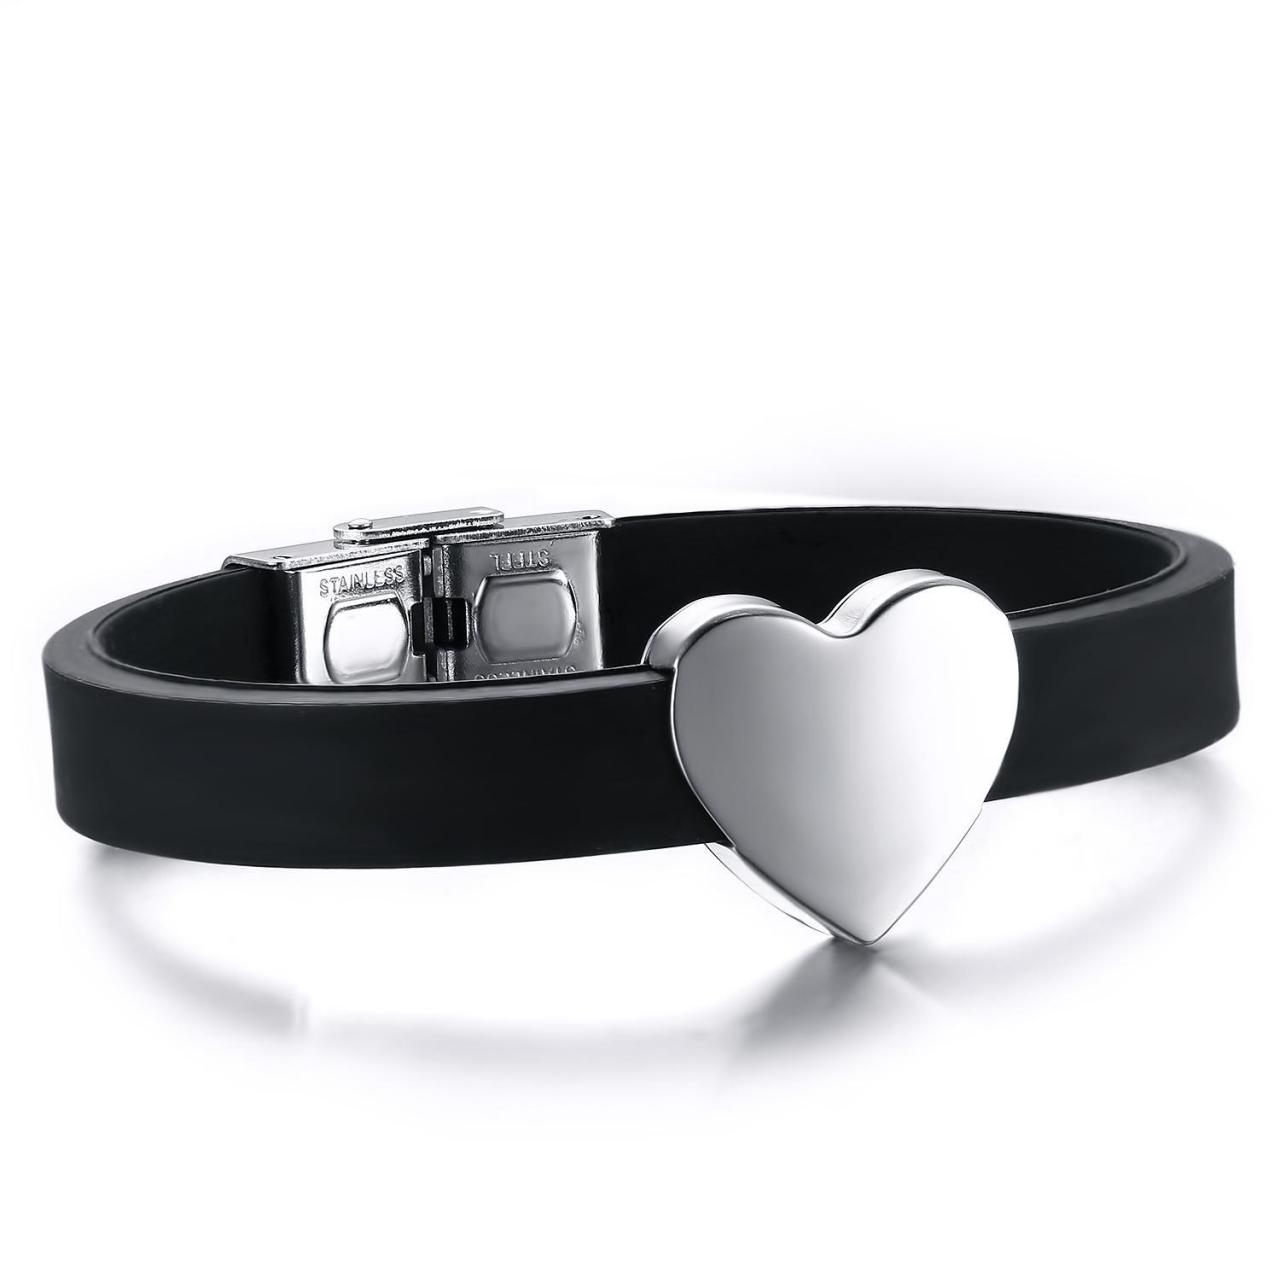 Quality Stainless Steel Silicone Rubber Bracelets Wholesale Price Bracelets With Heart M for sale